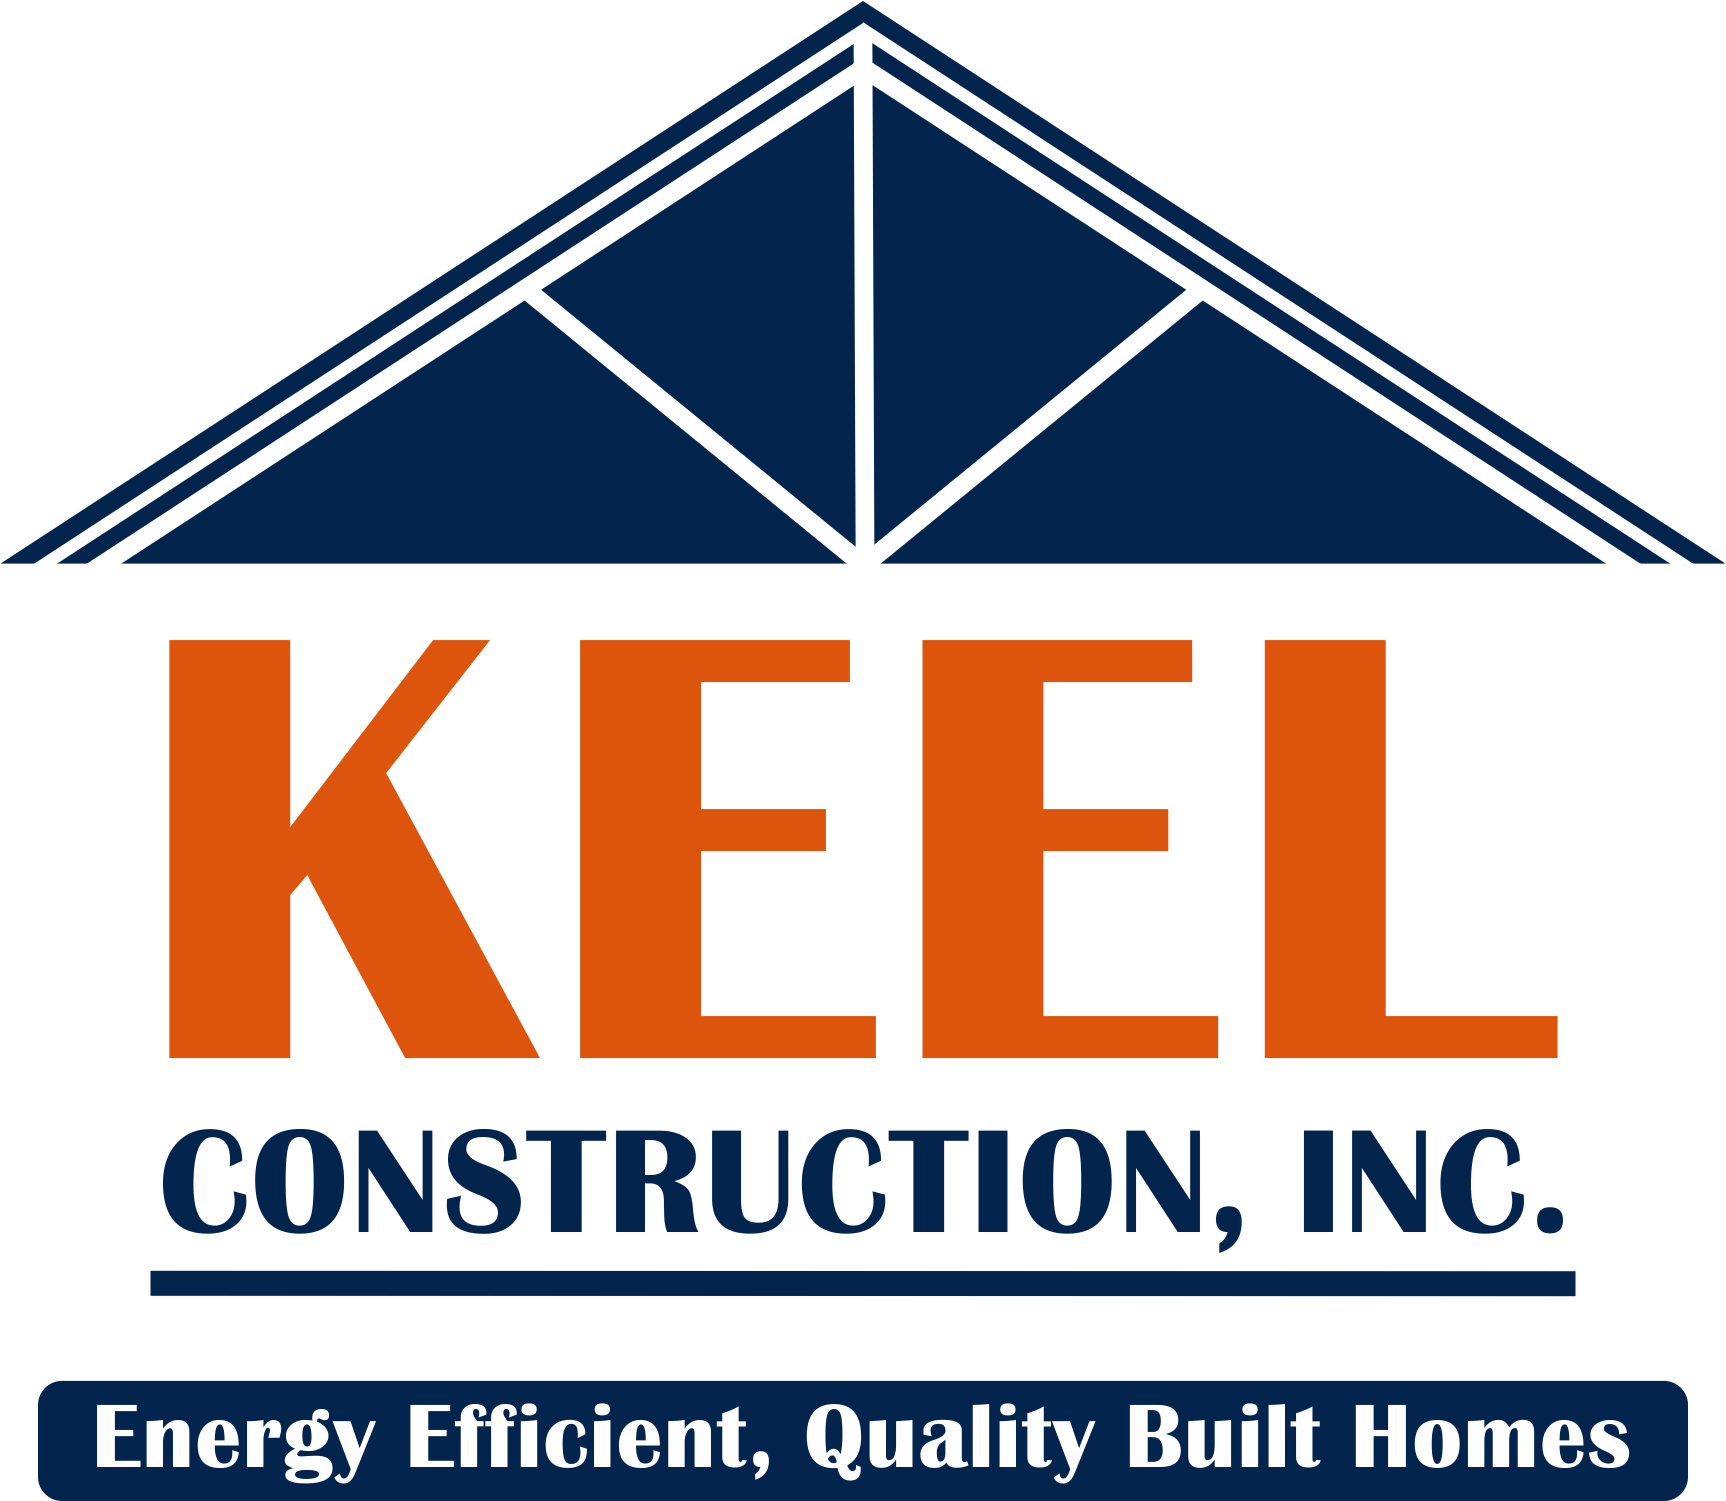 Keel Construction